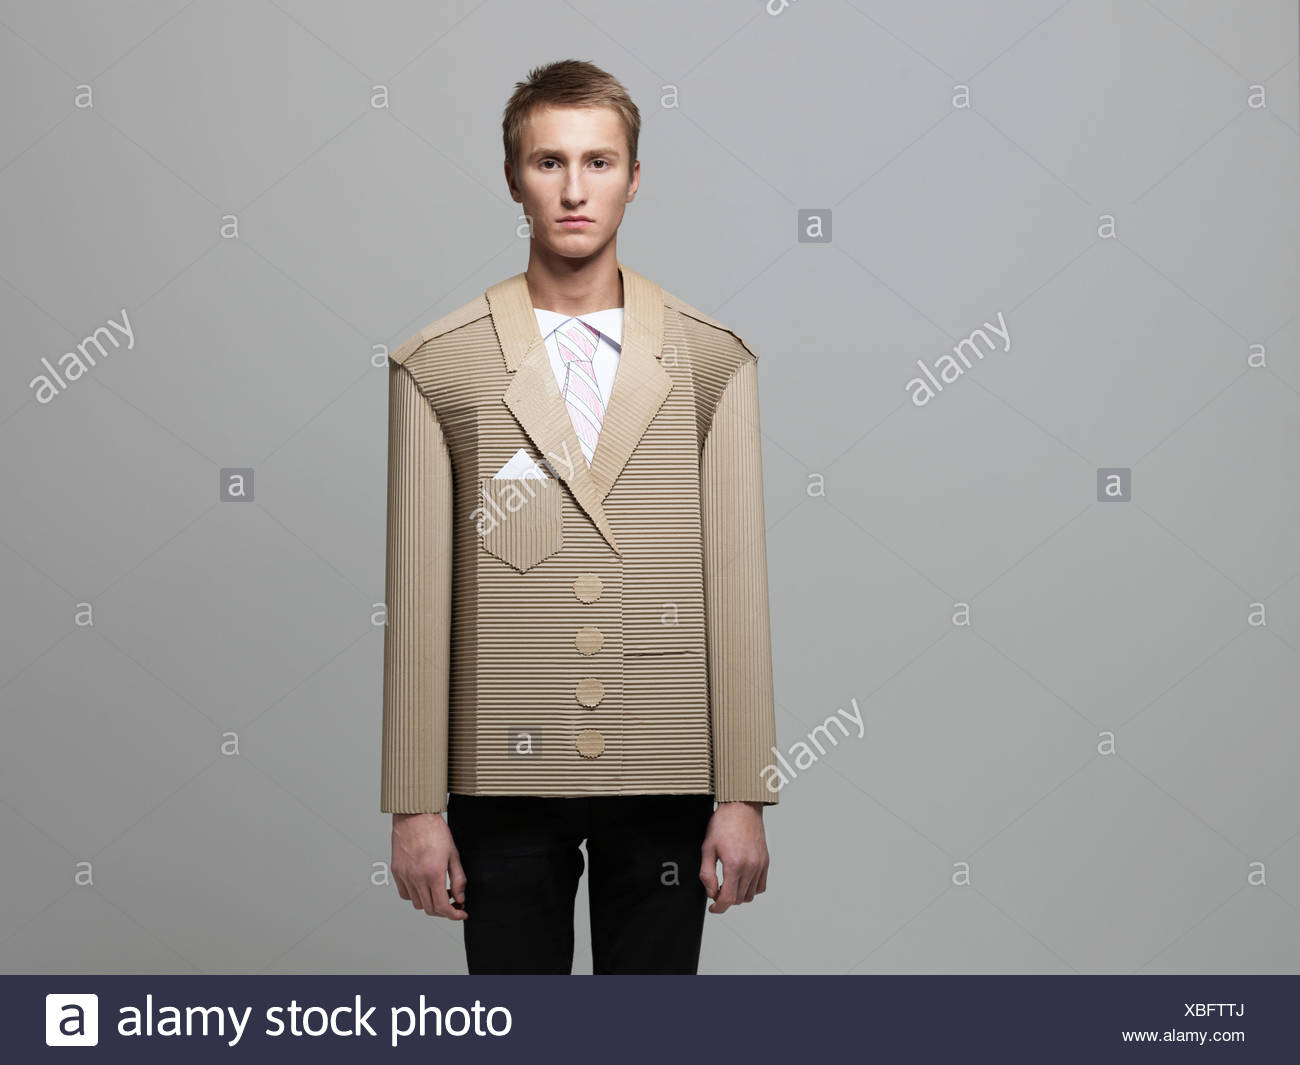 Man wearing jacket made out of corrugated cardboard - Stock Image